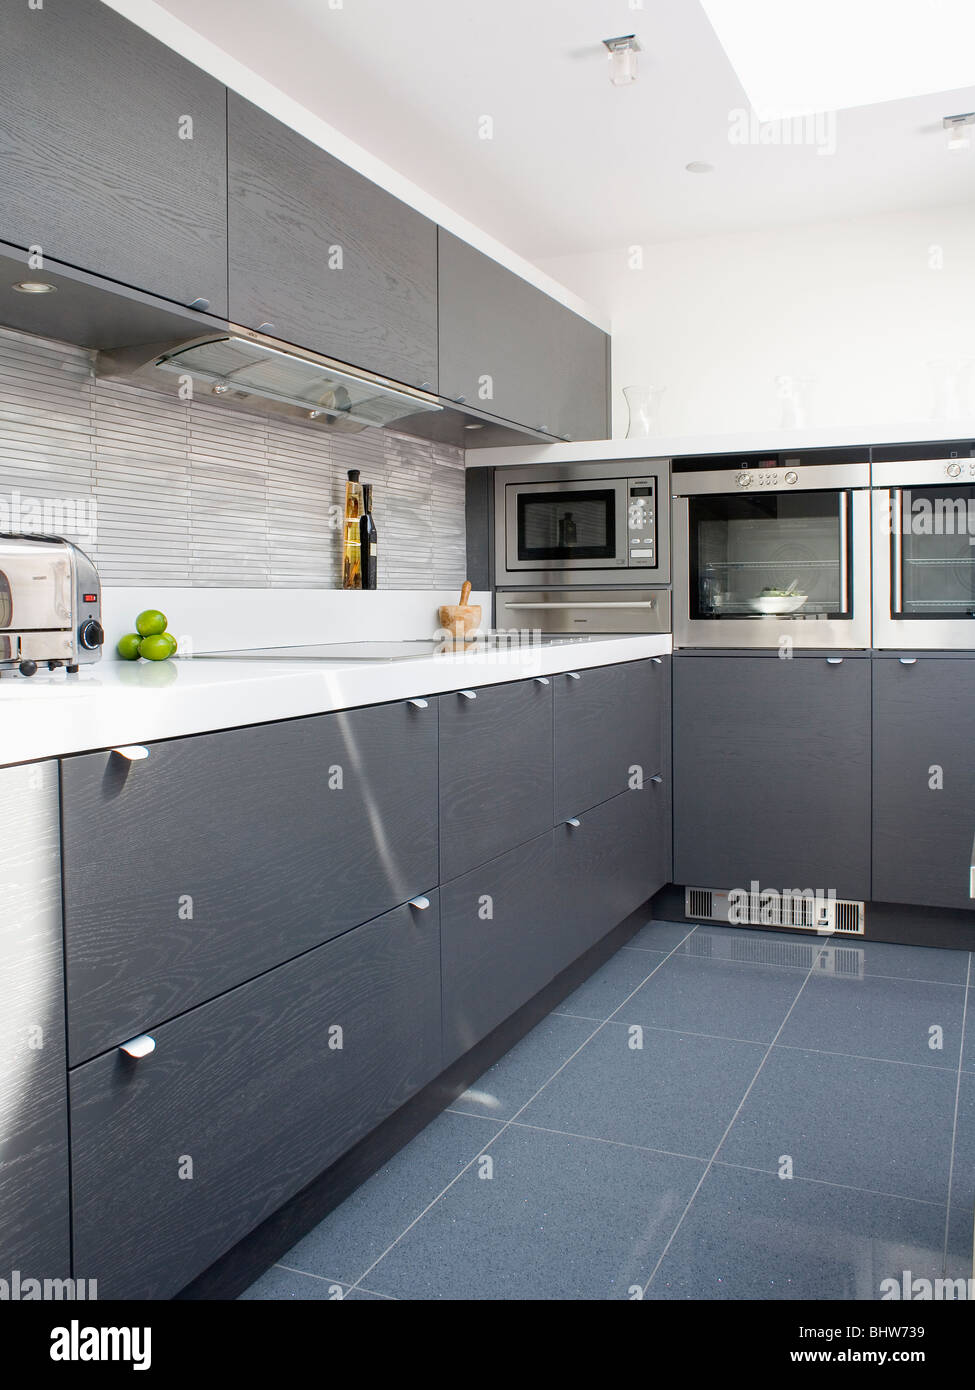 Kitchen Tiles Grey grey ceramic floor tiles in modern white kitchen with dark gray